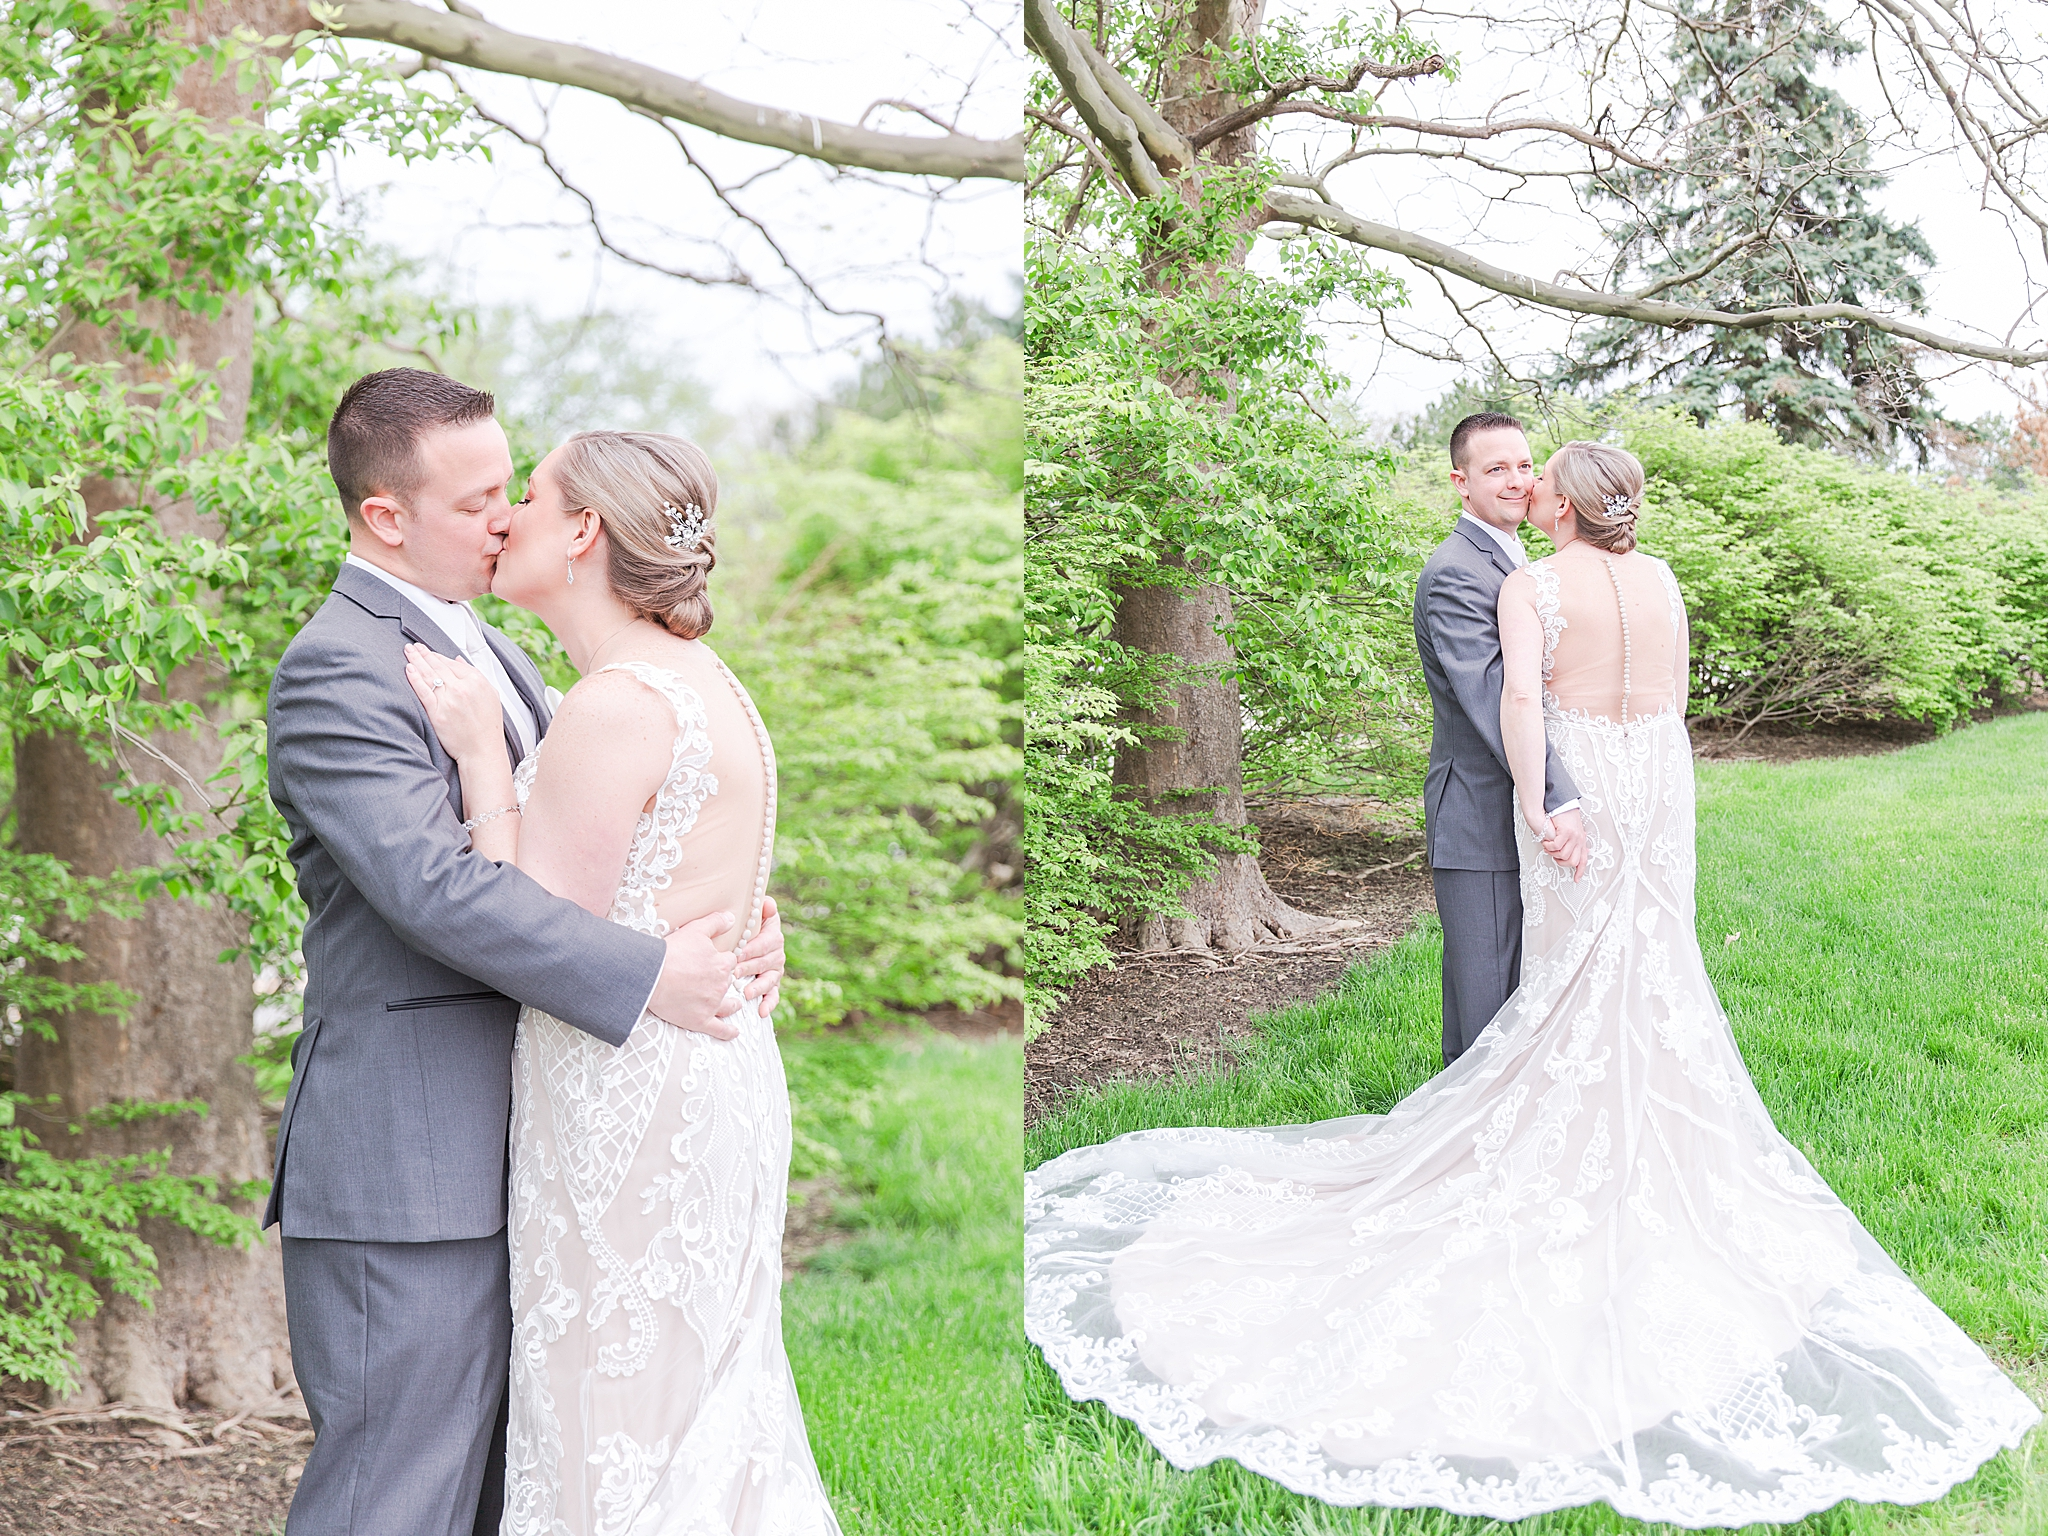 modern-romantic-wedding-photography-at-webers-in-ann-arbor-michigan-by-courtney-carolyn-photography_0036.jpg